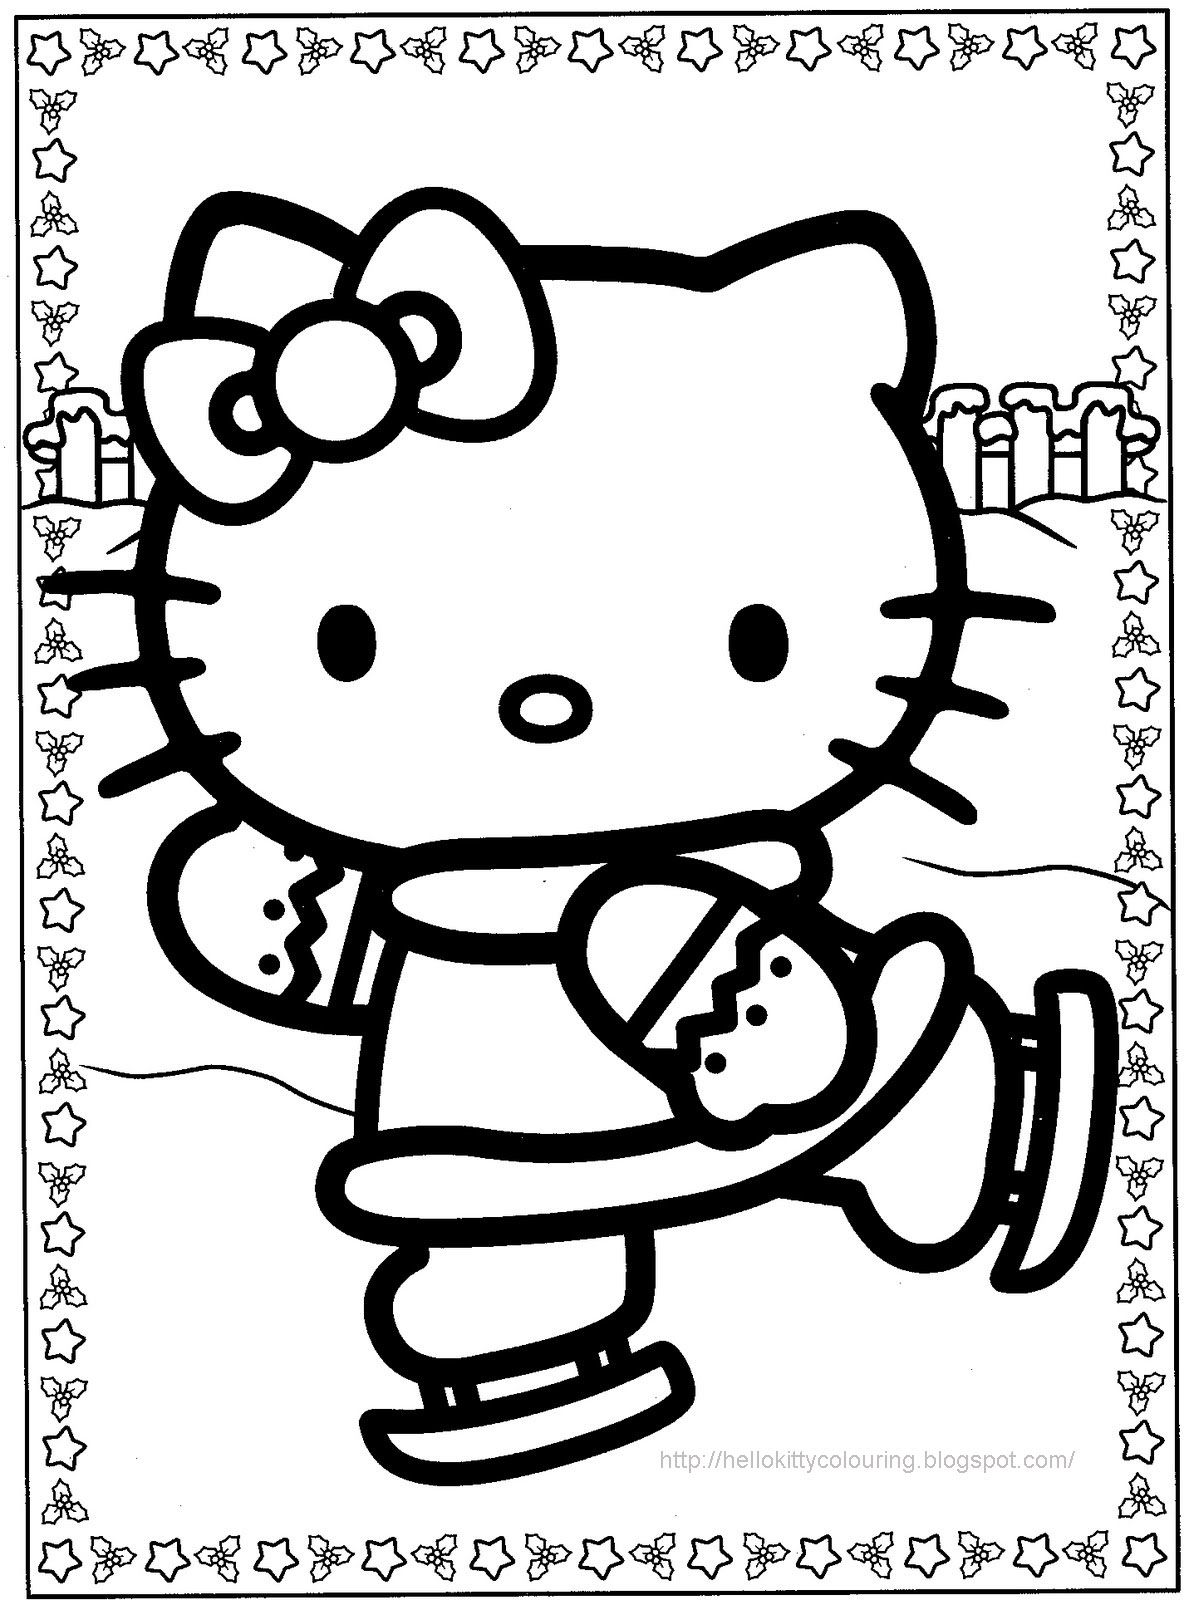 As with most of the other Hello Kitty coloring pages, the